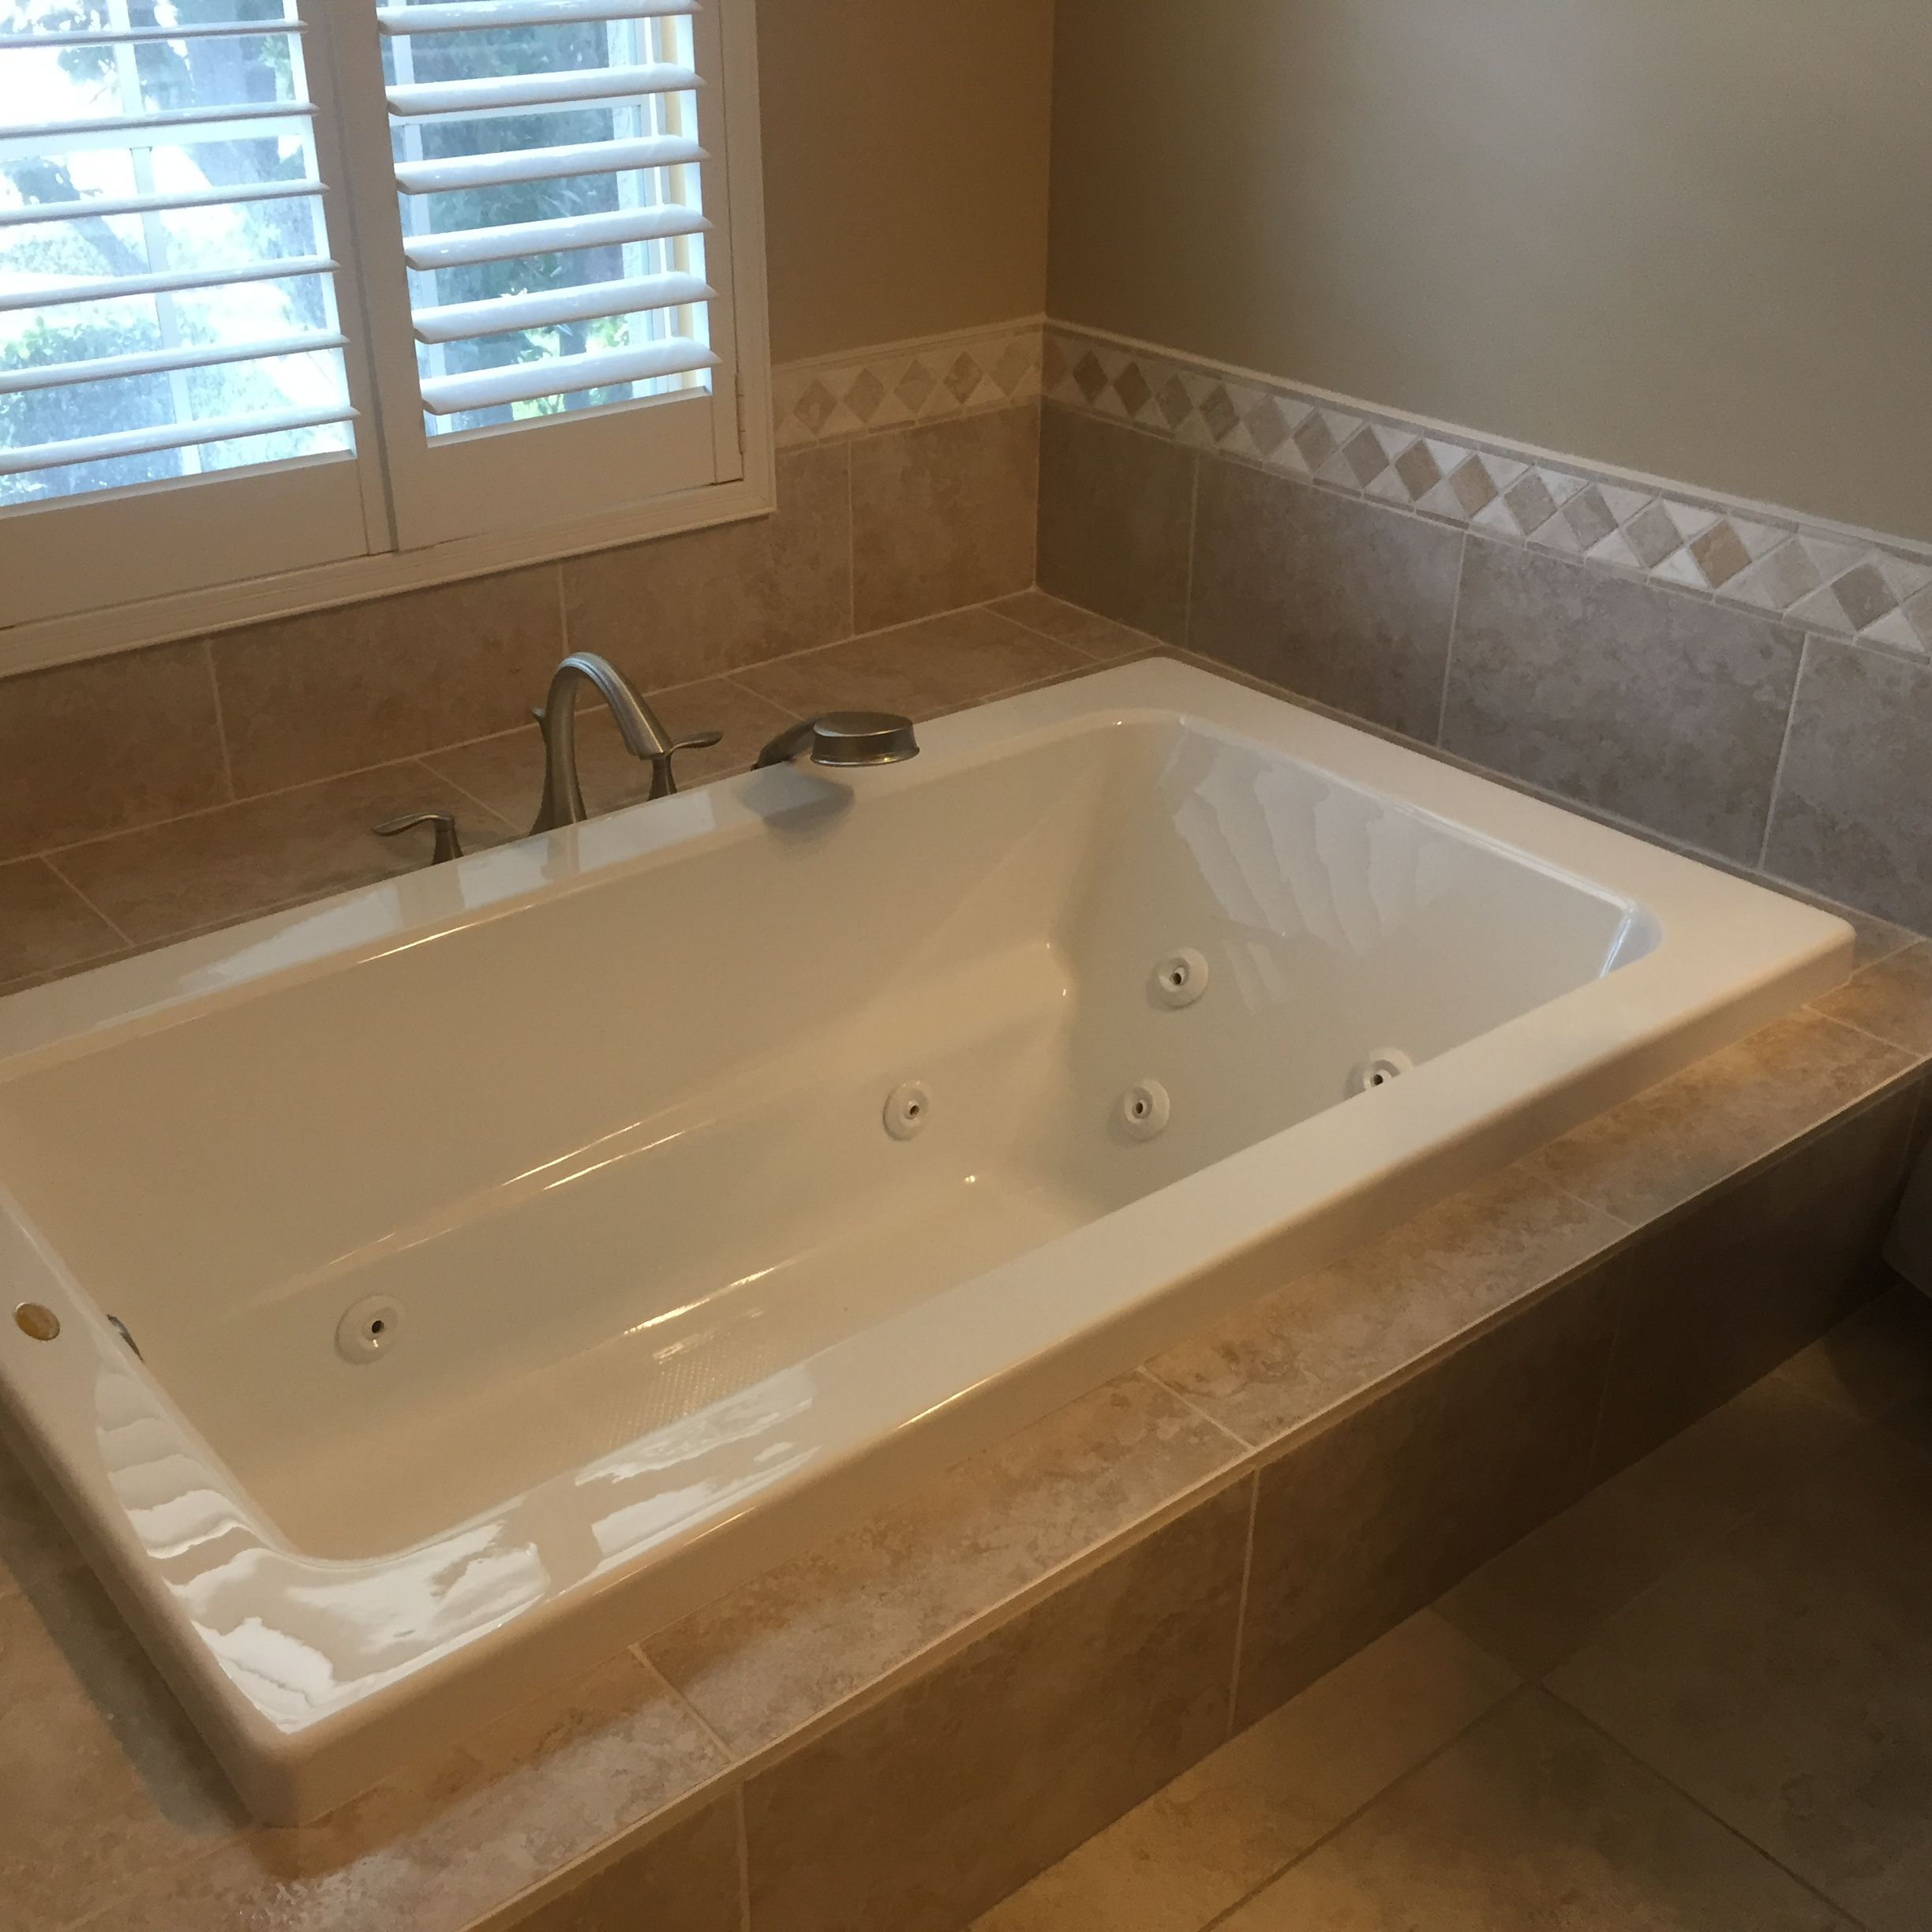 Drop In Jetted Tub W Moen Eva Roman Tub Spout Sprayer Bathroom Remodels Pinterest The O